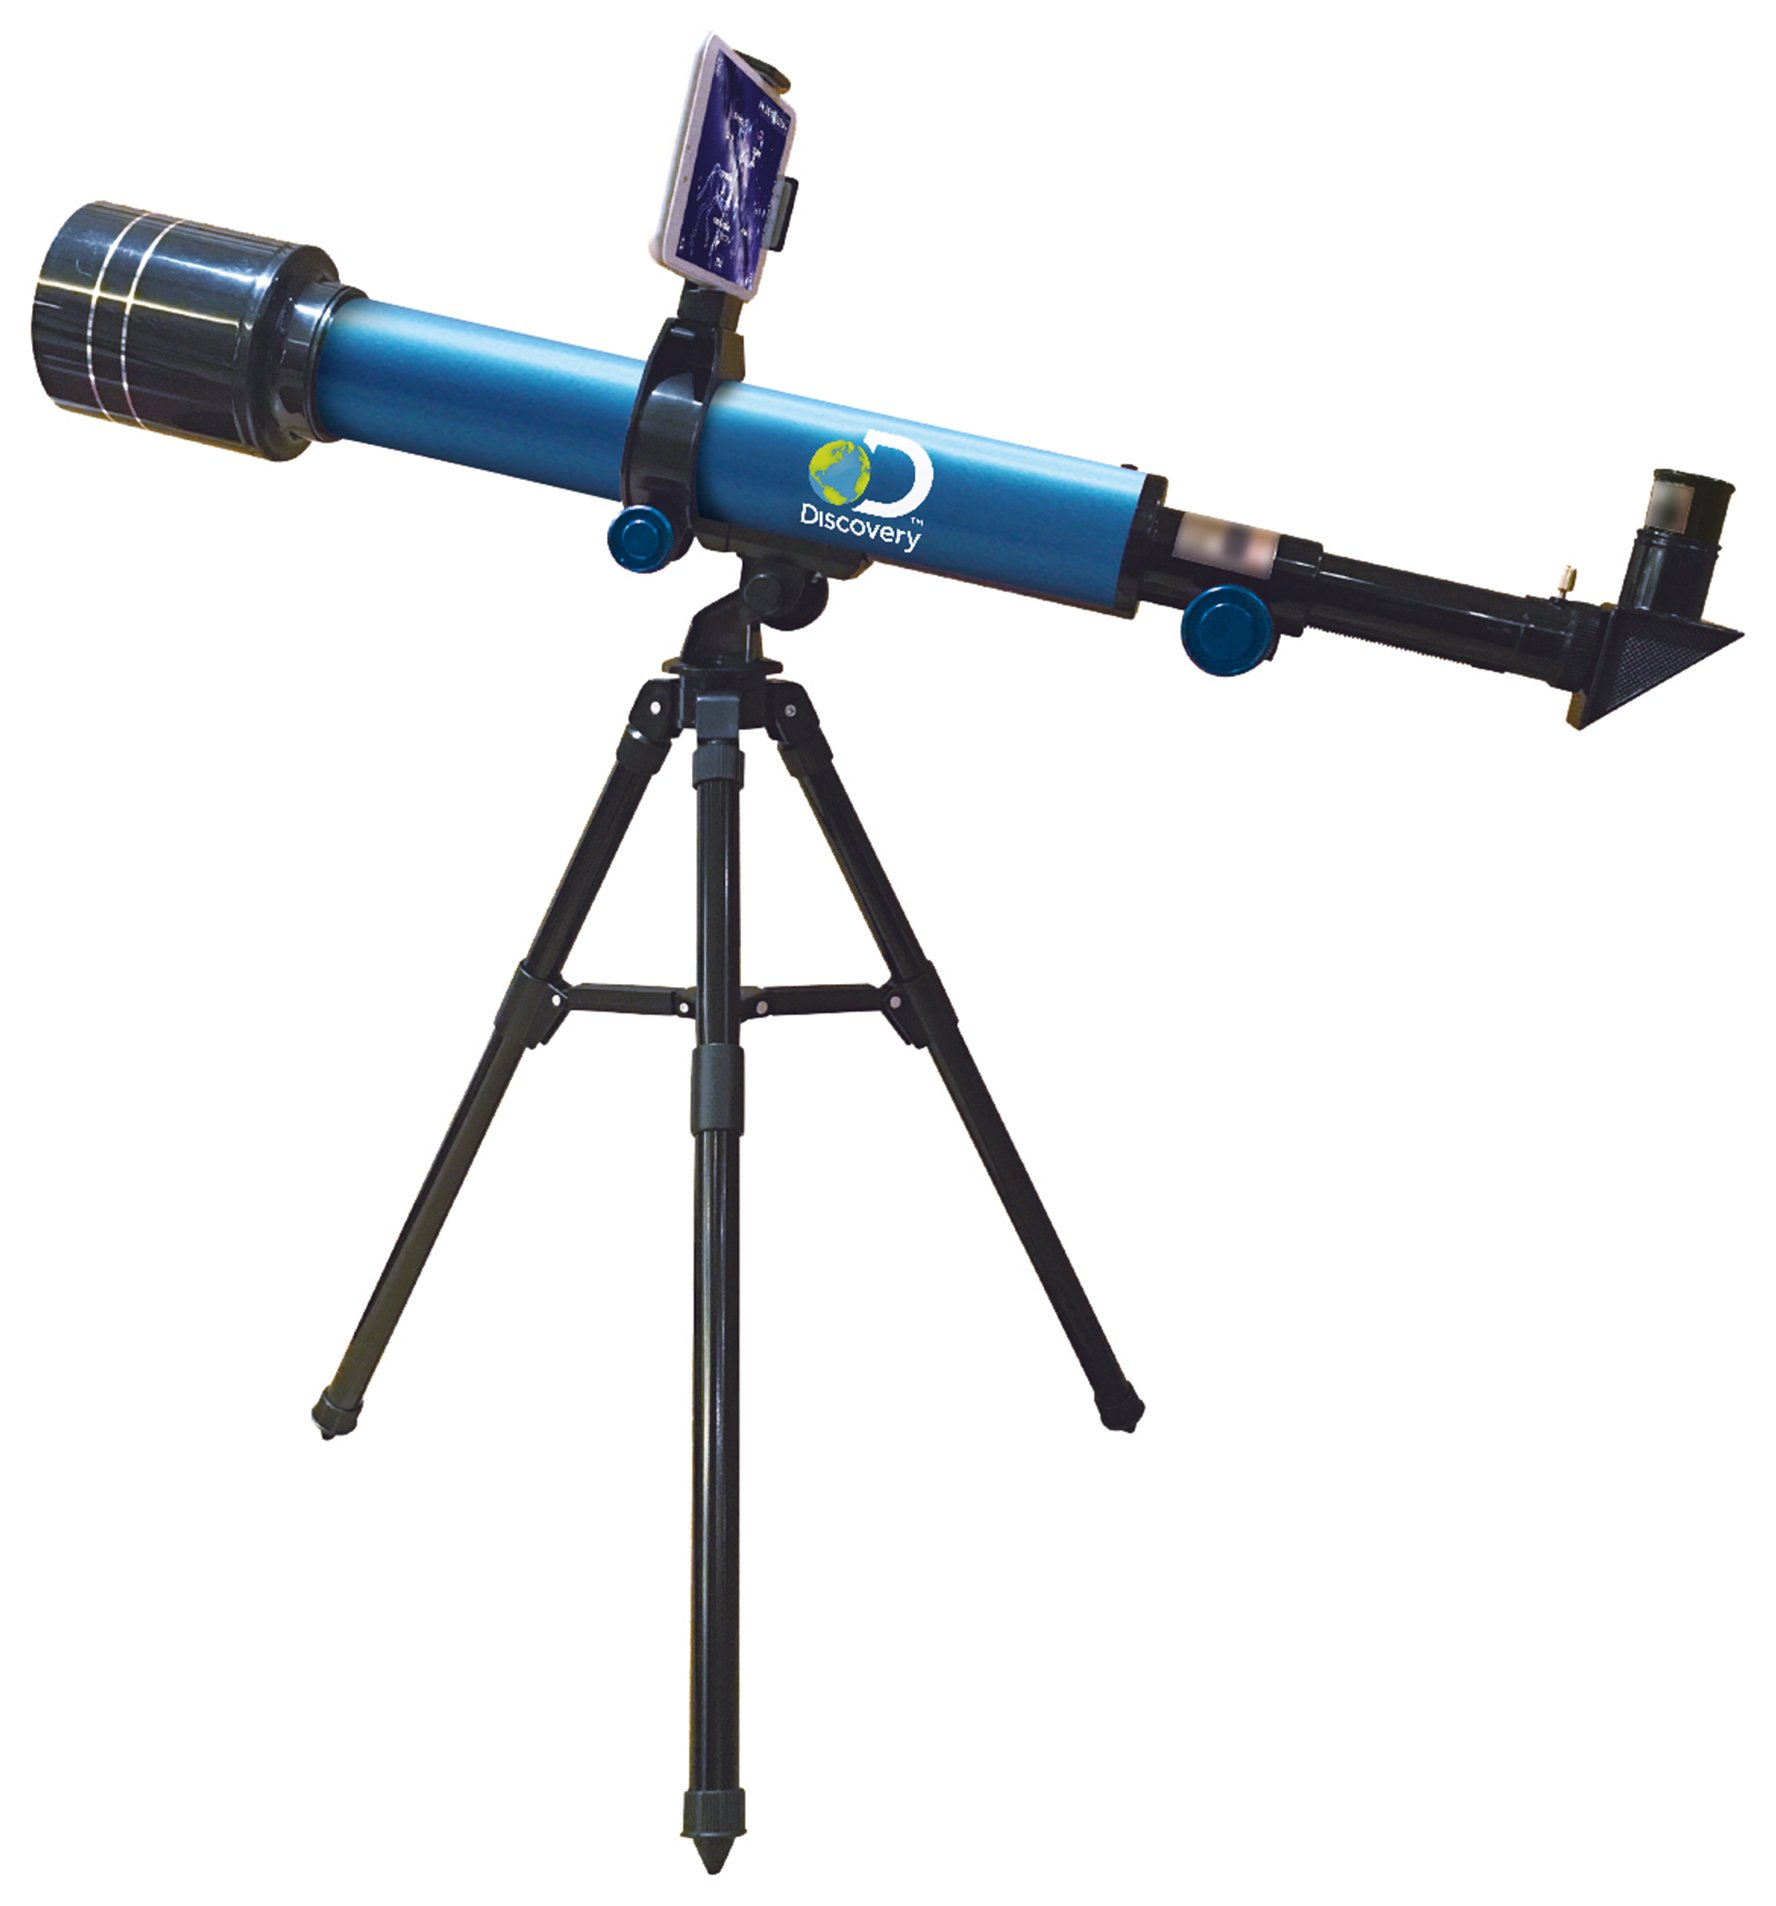 Discovery Galaxy Smart Telescope.